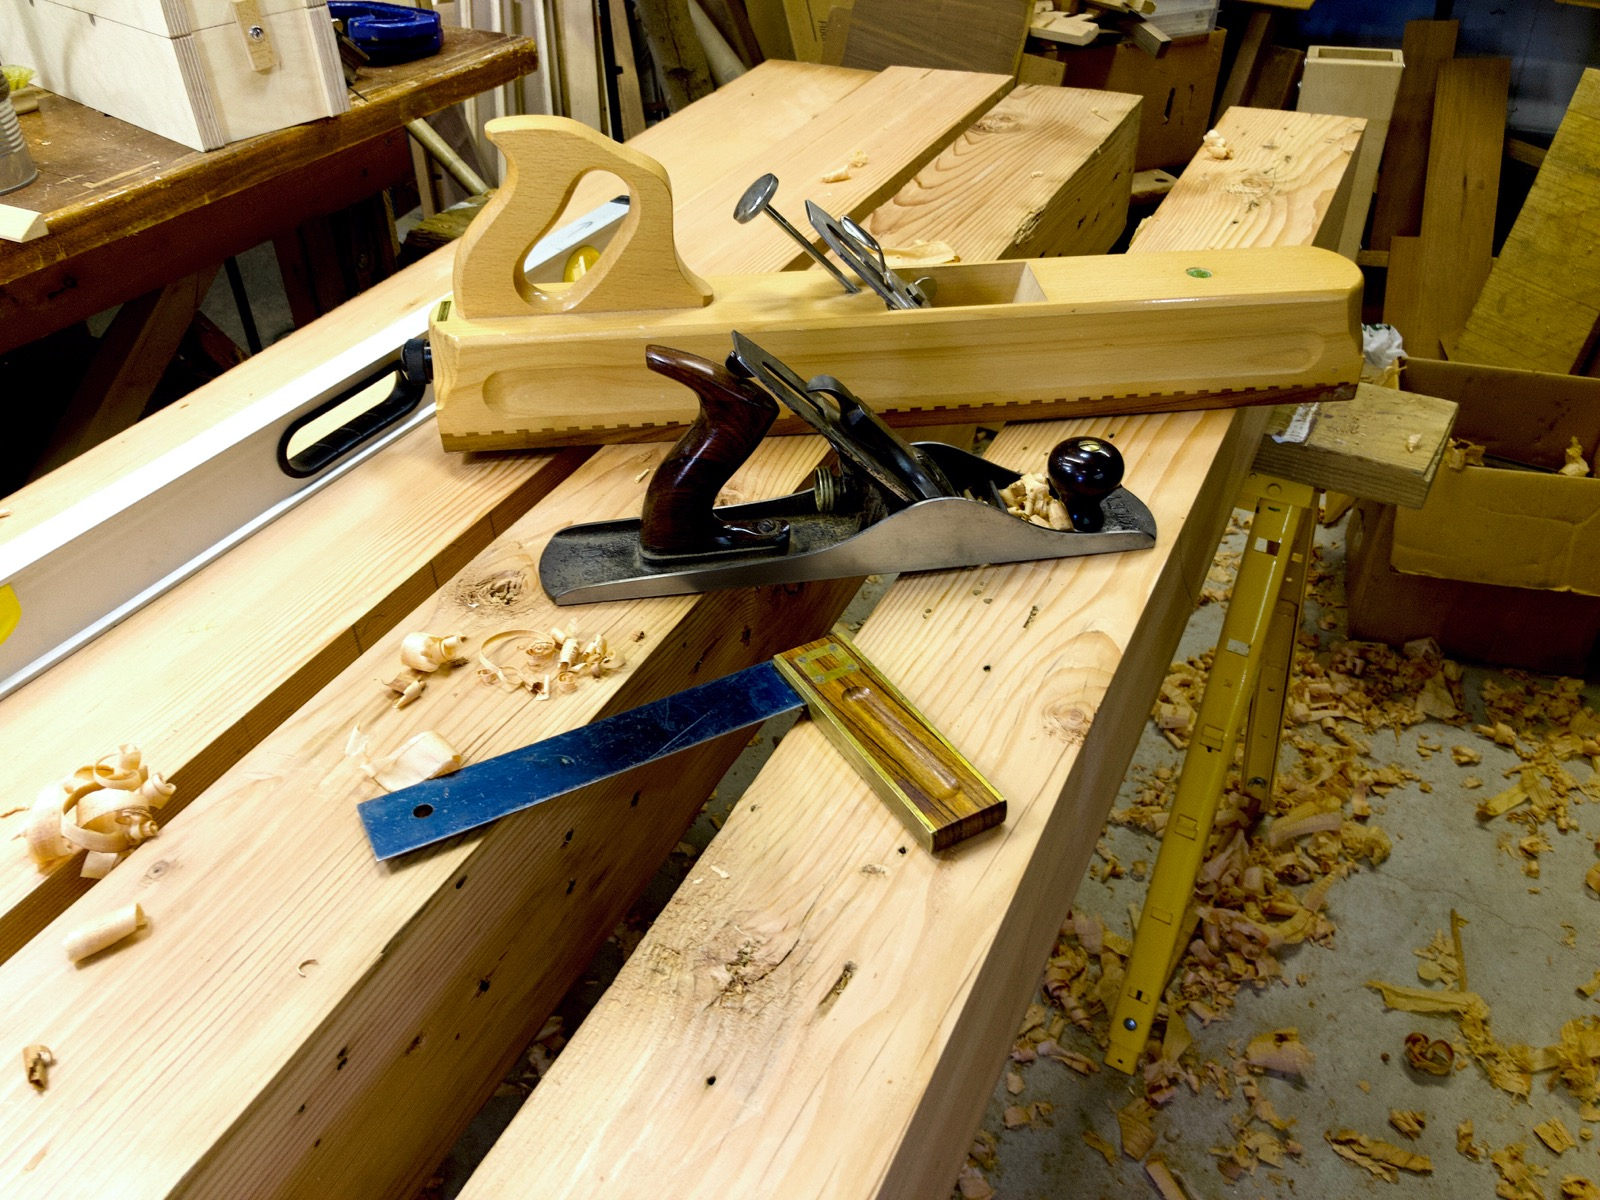 The beams for the top on a saw horse. Tools are on the beams.